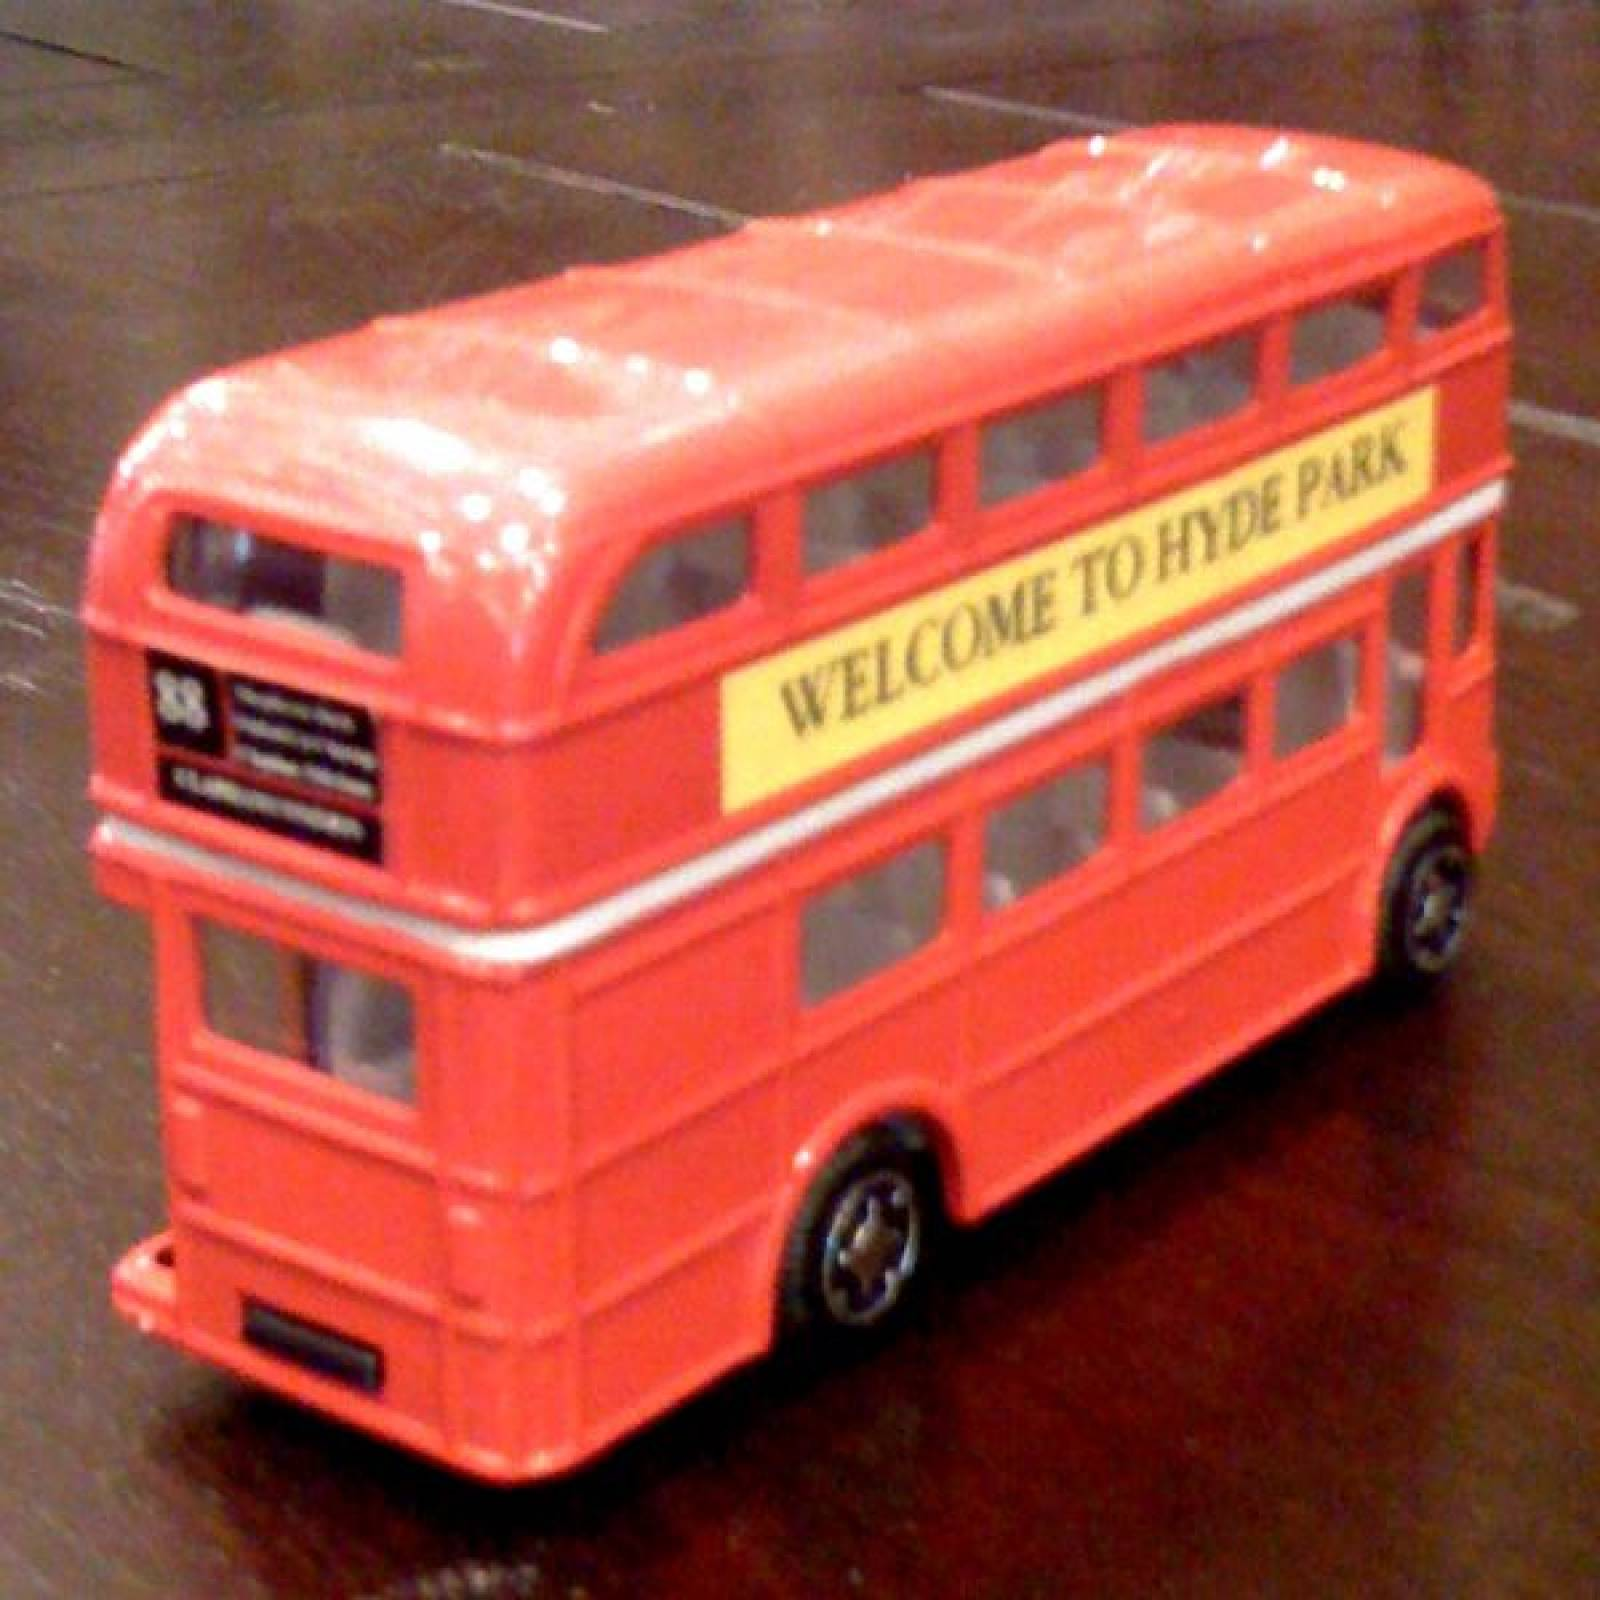 London Routemaster Bus Die Cast. thumbnails